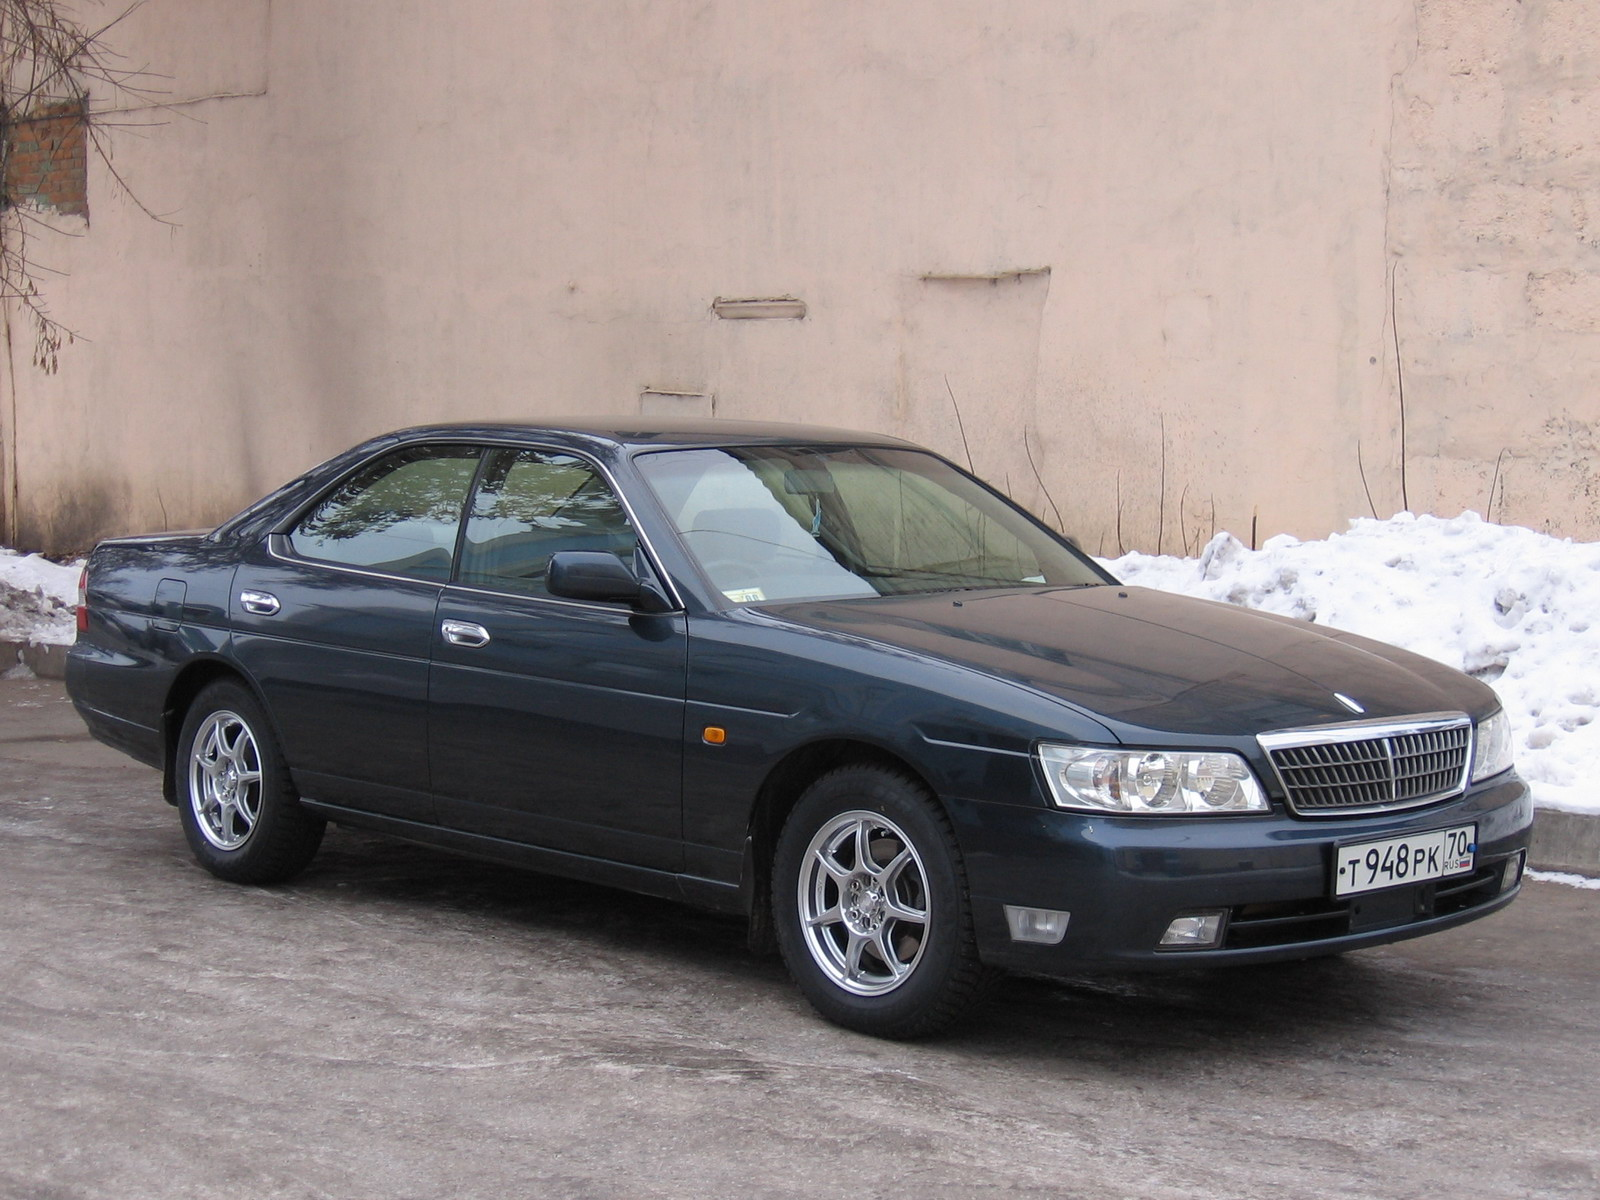 Nissan laurel photo - 2